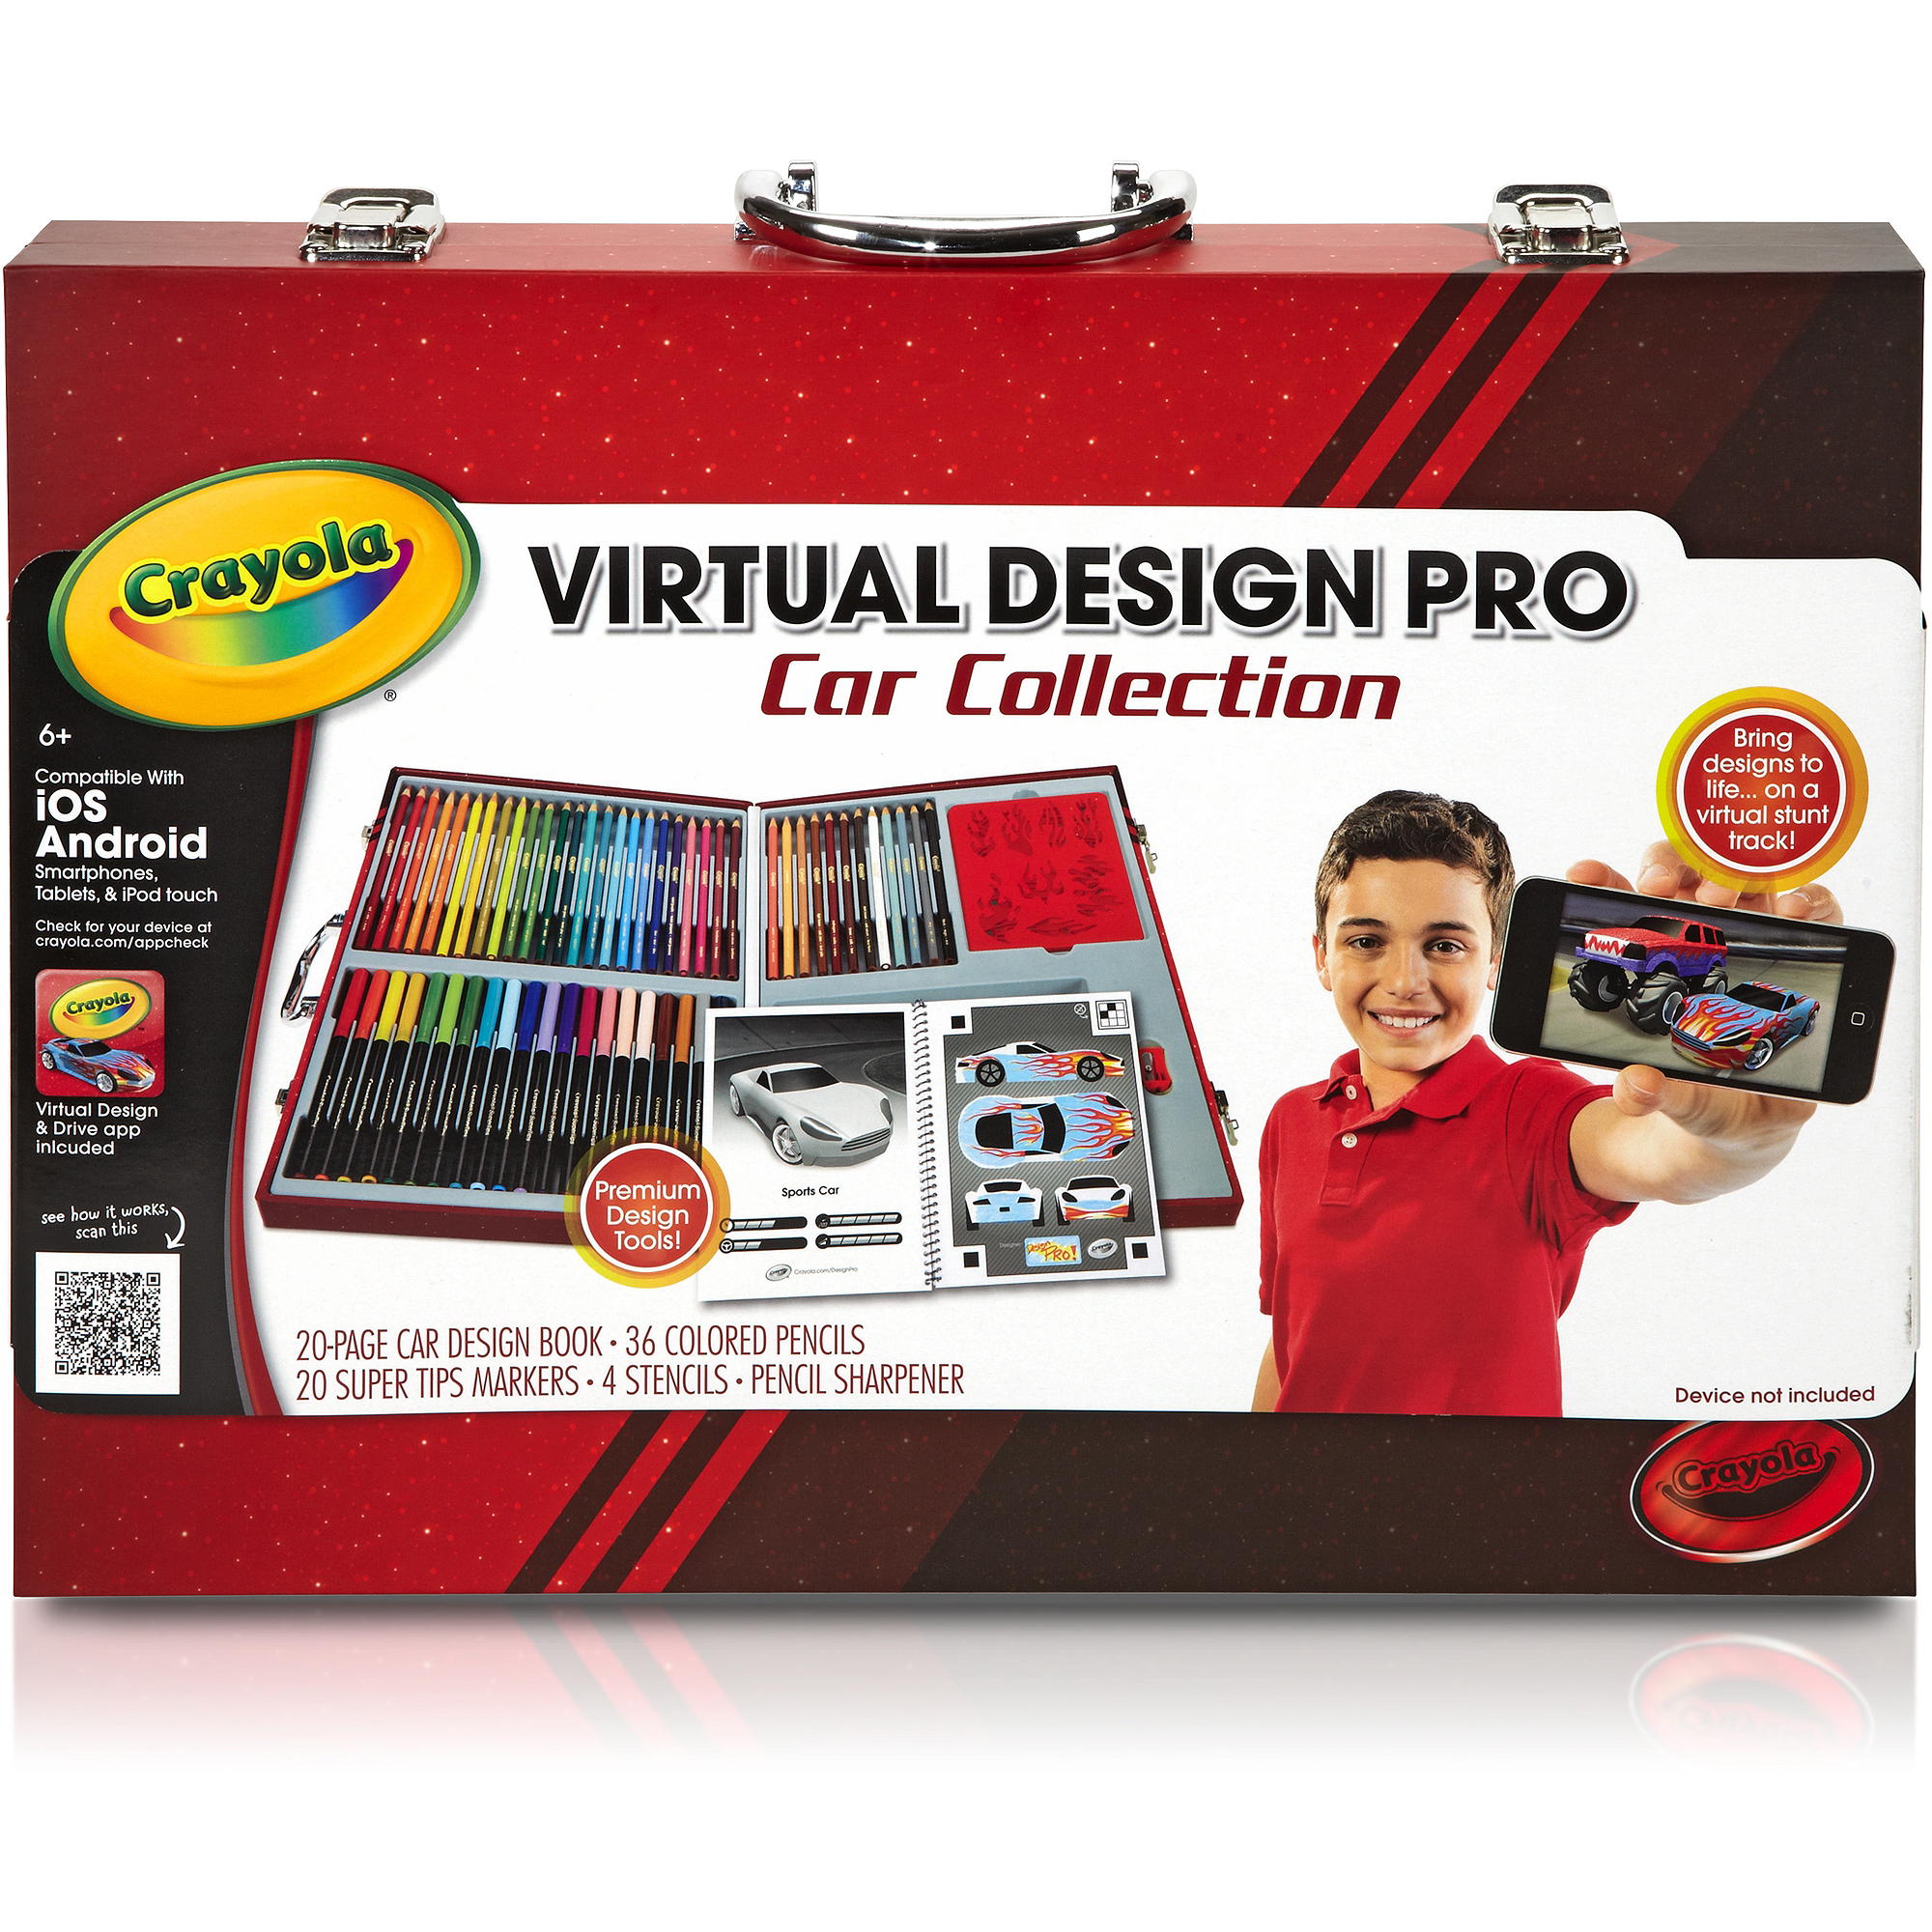 Crayola Virtual Design Pro Car Collection